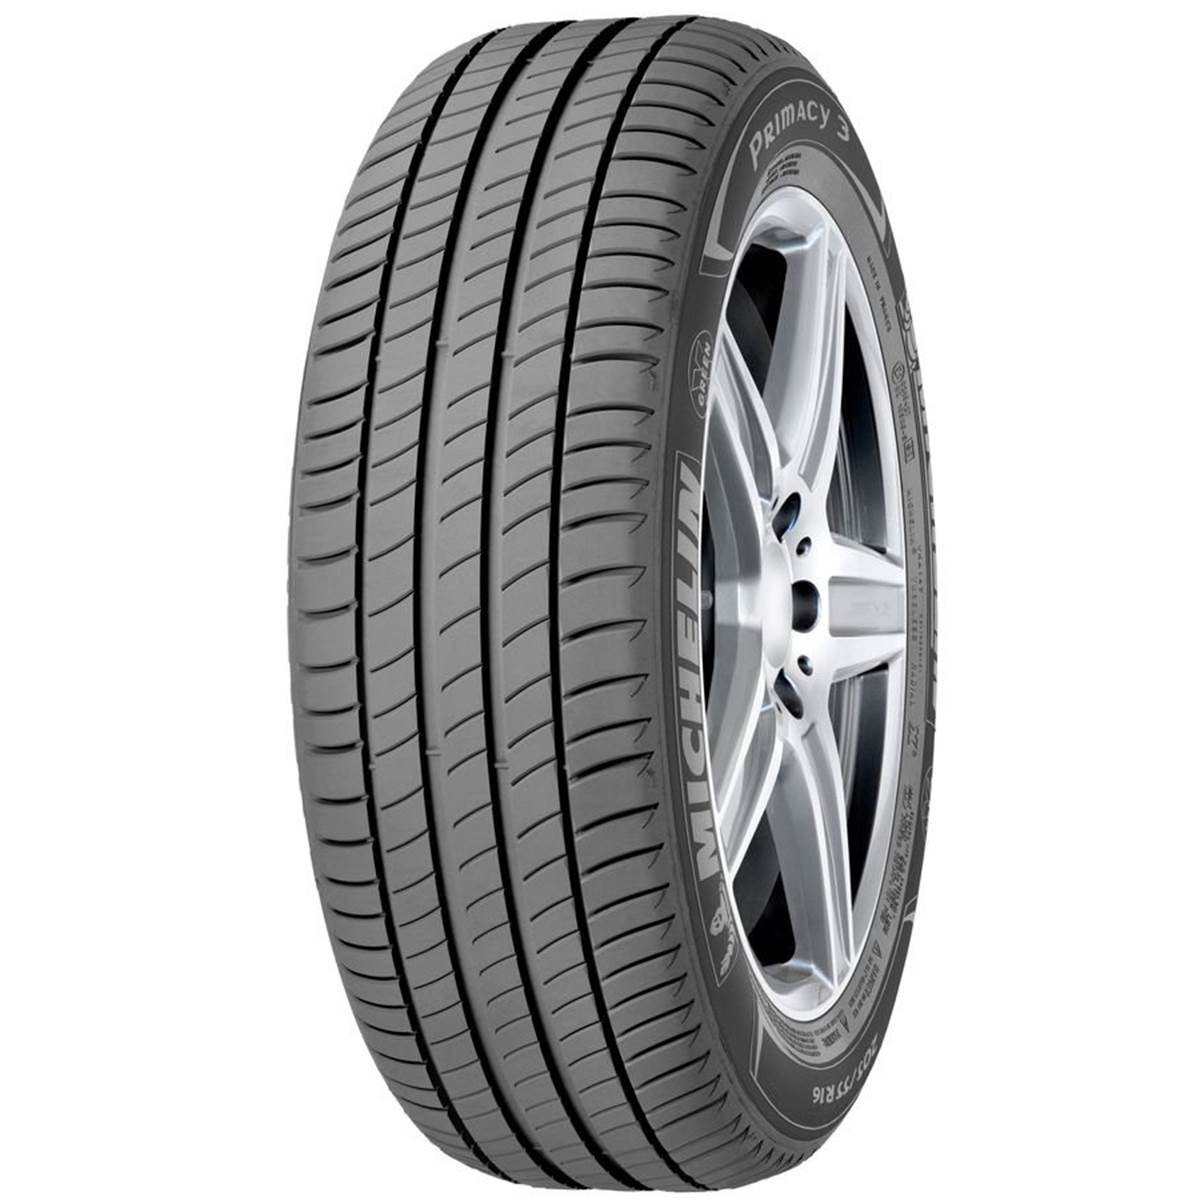 Pneu Michelin 215/60R17 96H Primacy 3